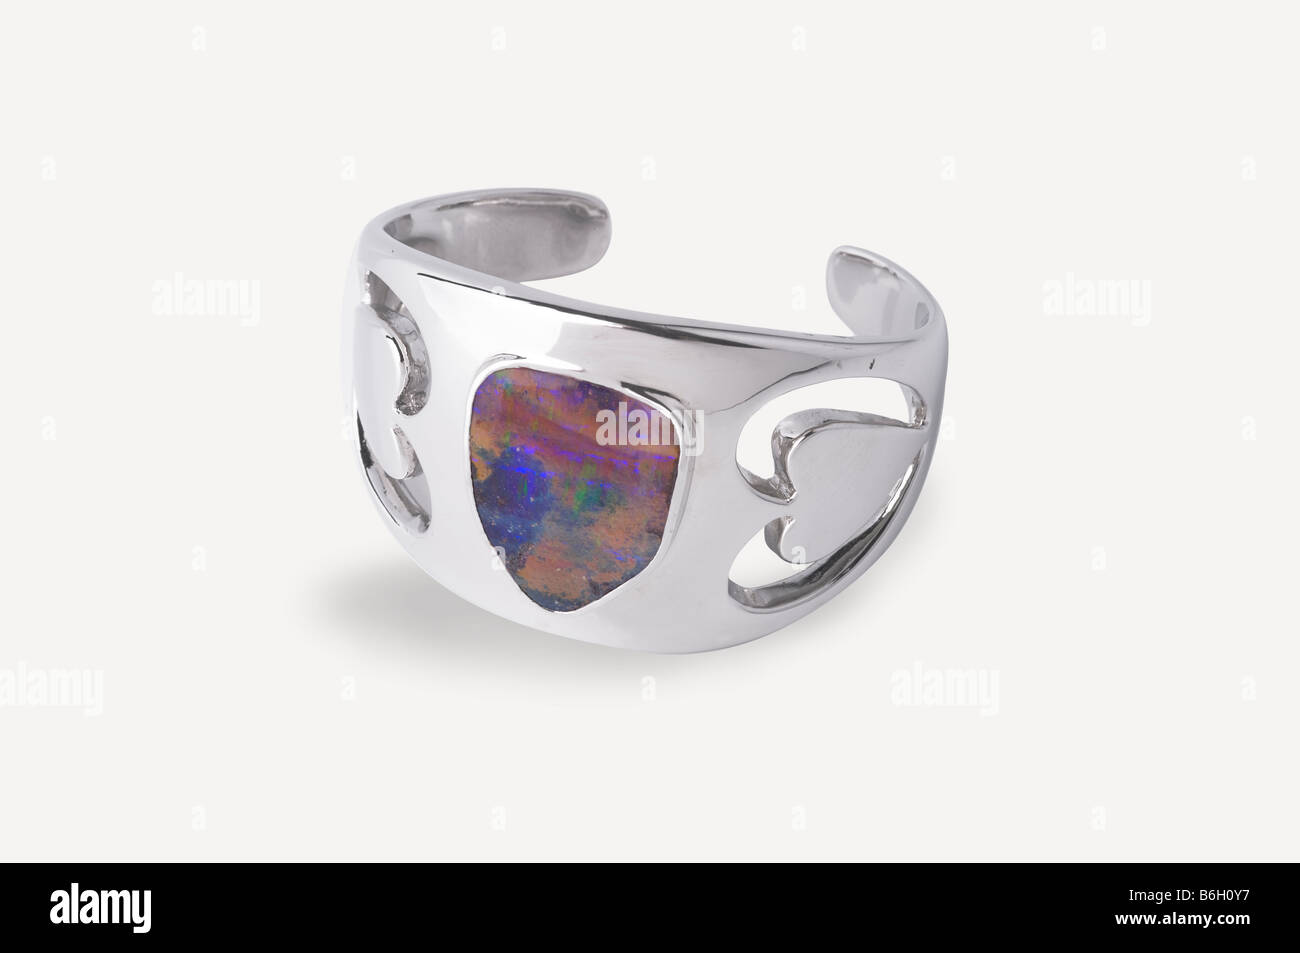 Opal and silver bangle on white background - Stock Image